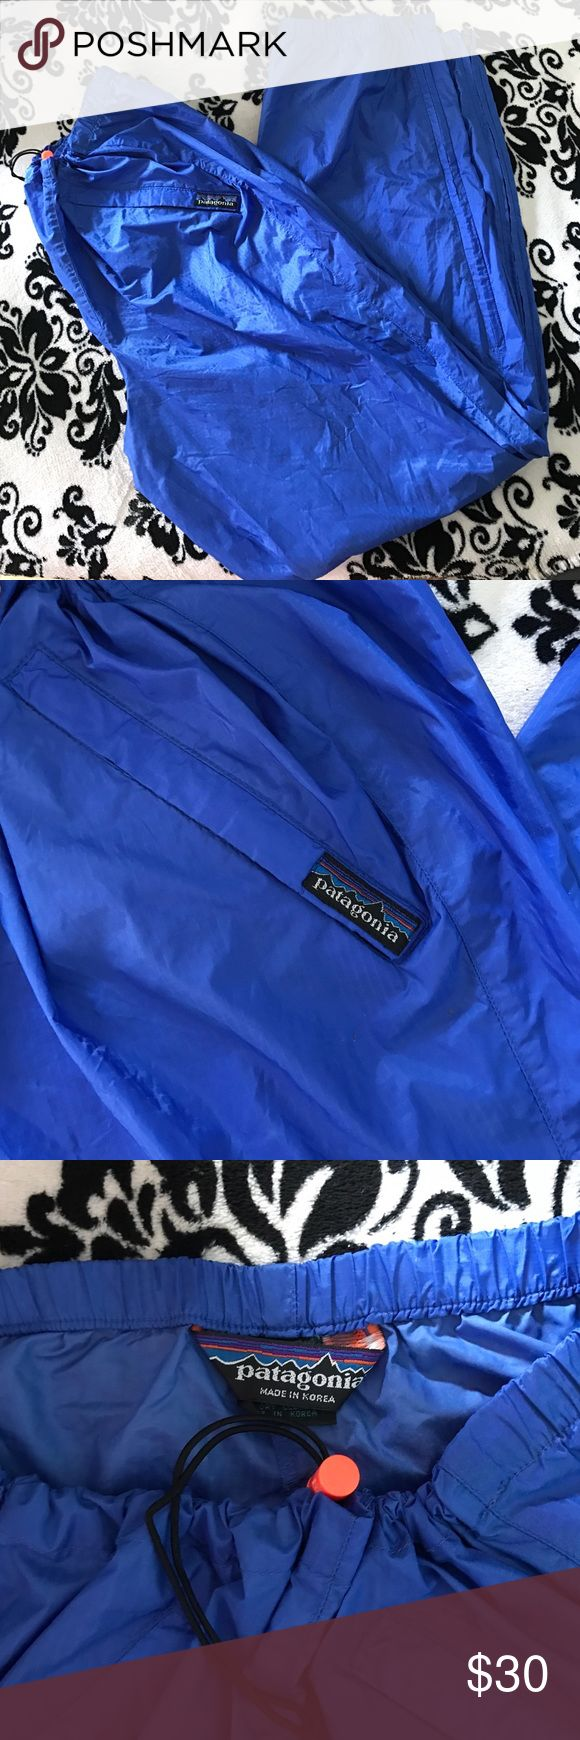 Patagonia pants I think they are called Houdini pants lol but they are cute Patagonia Pants Sweatpants & Joggers